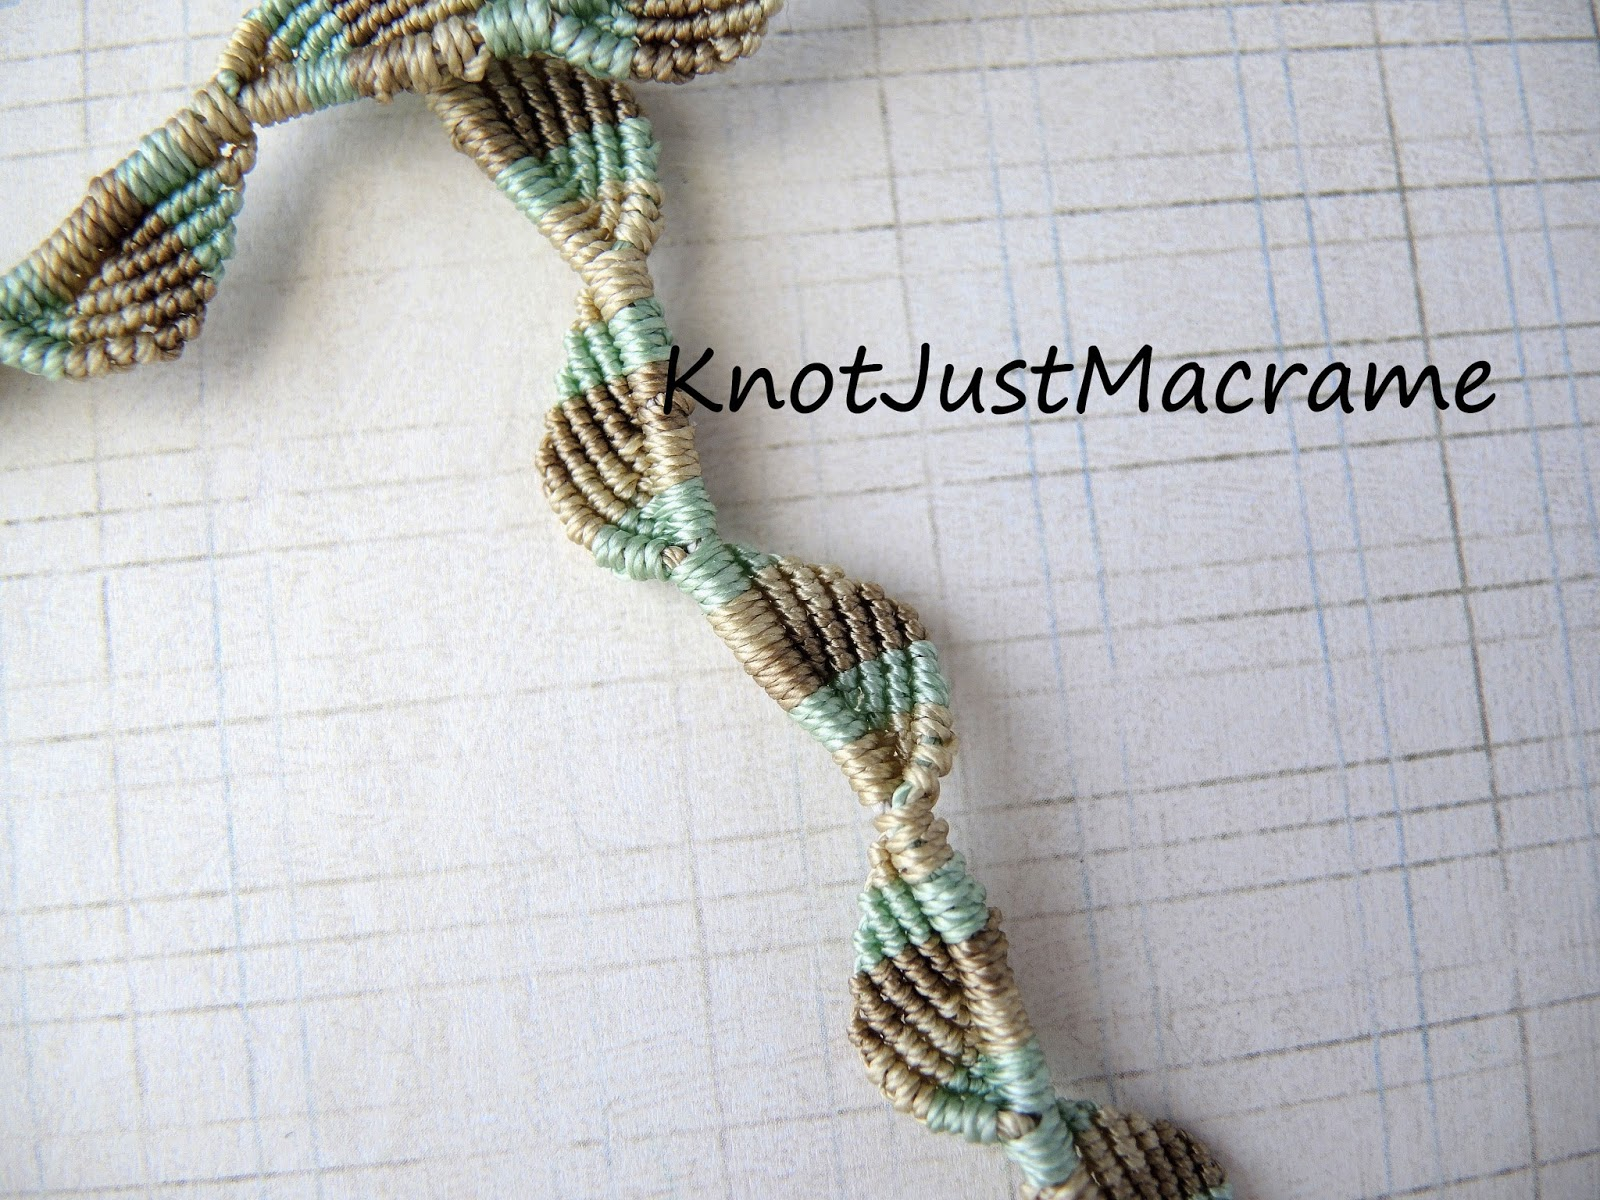 Micro macrame knot work in mint and khaki.